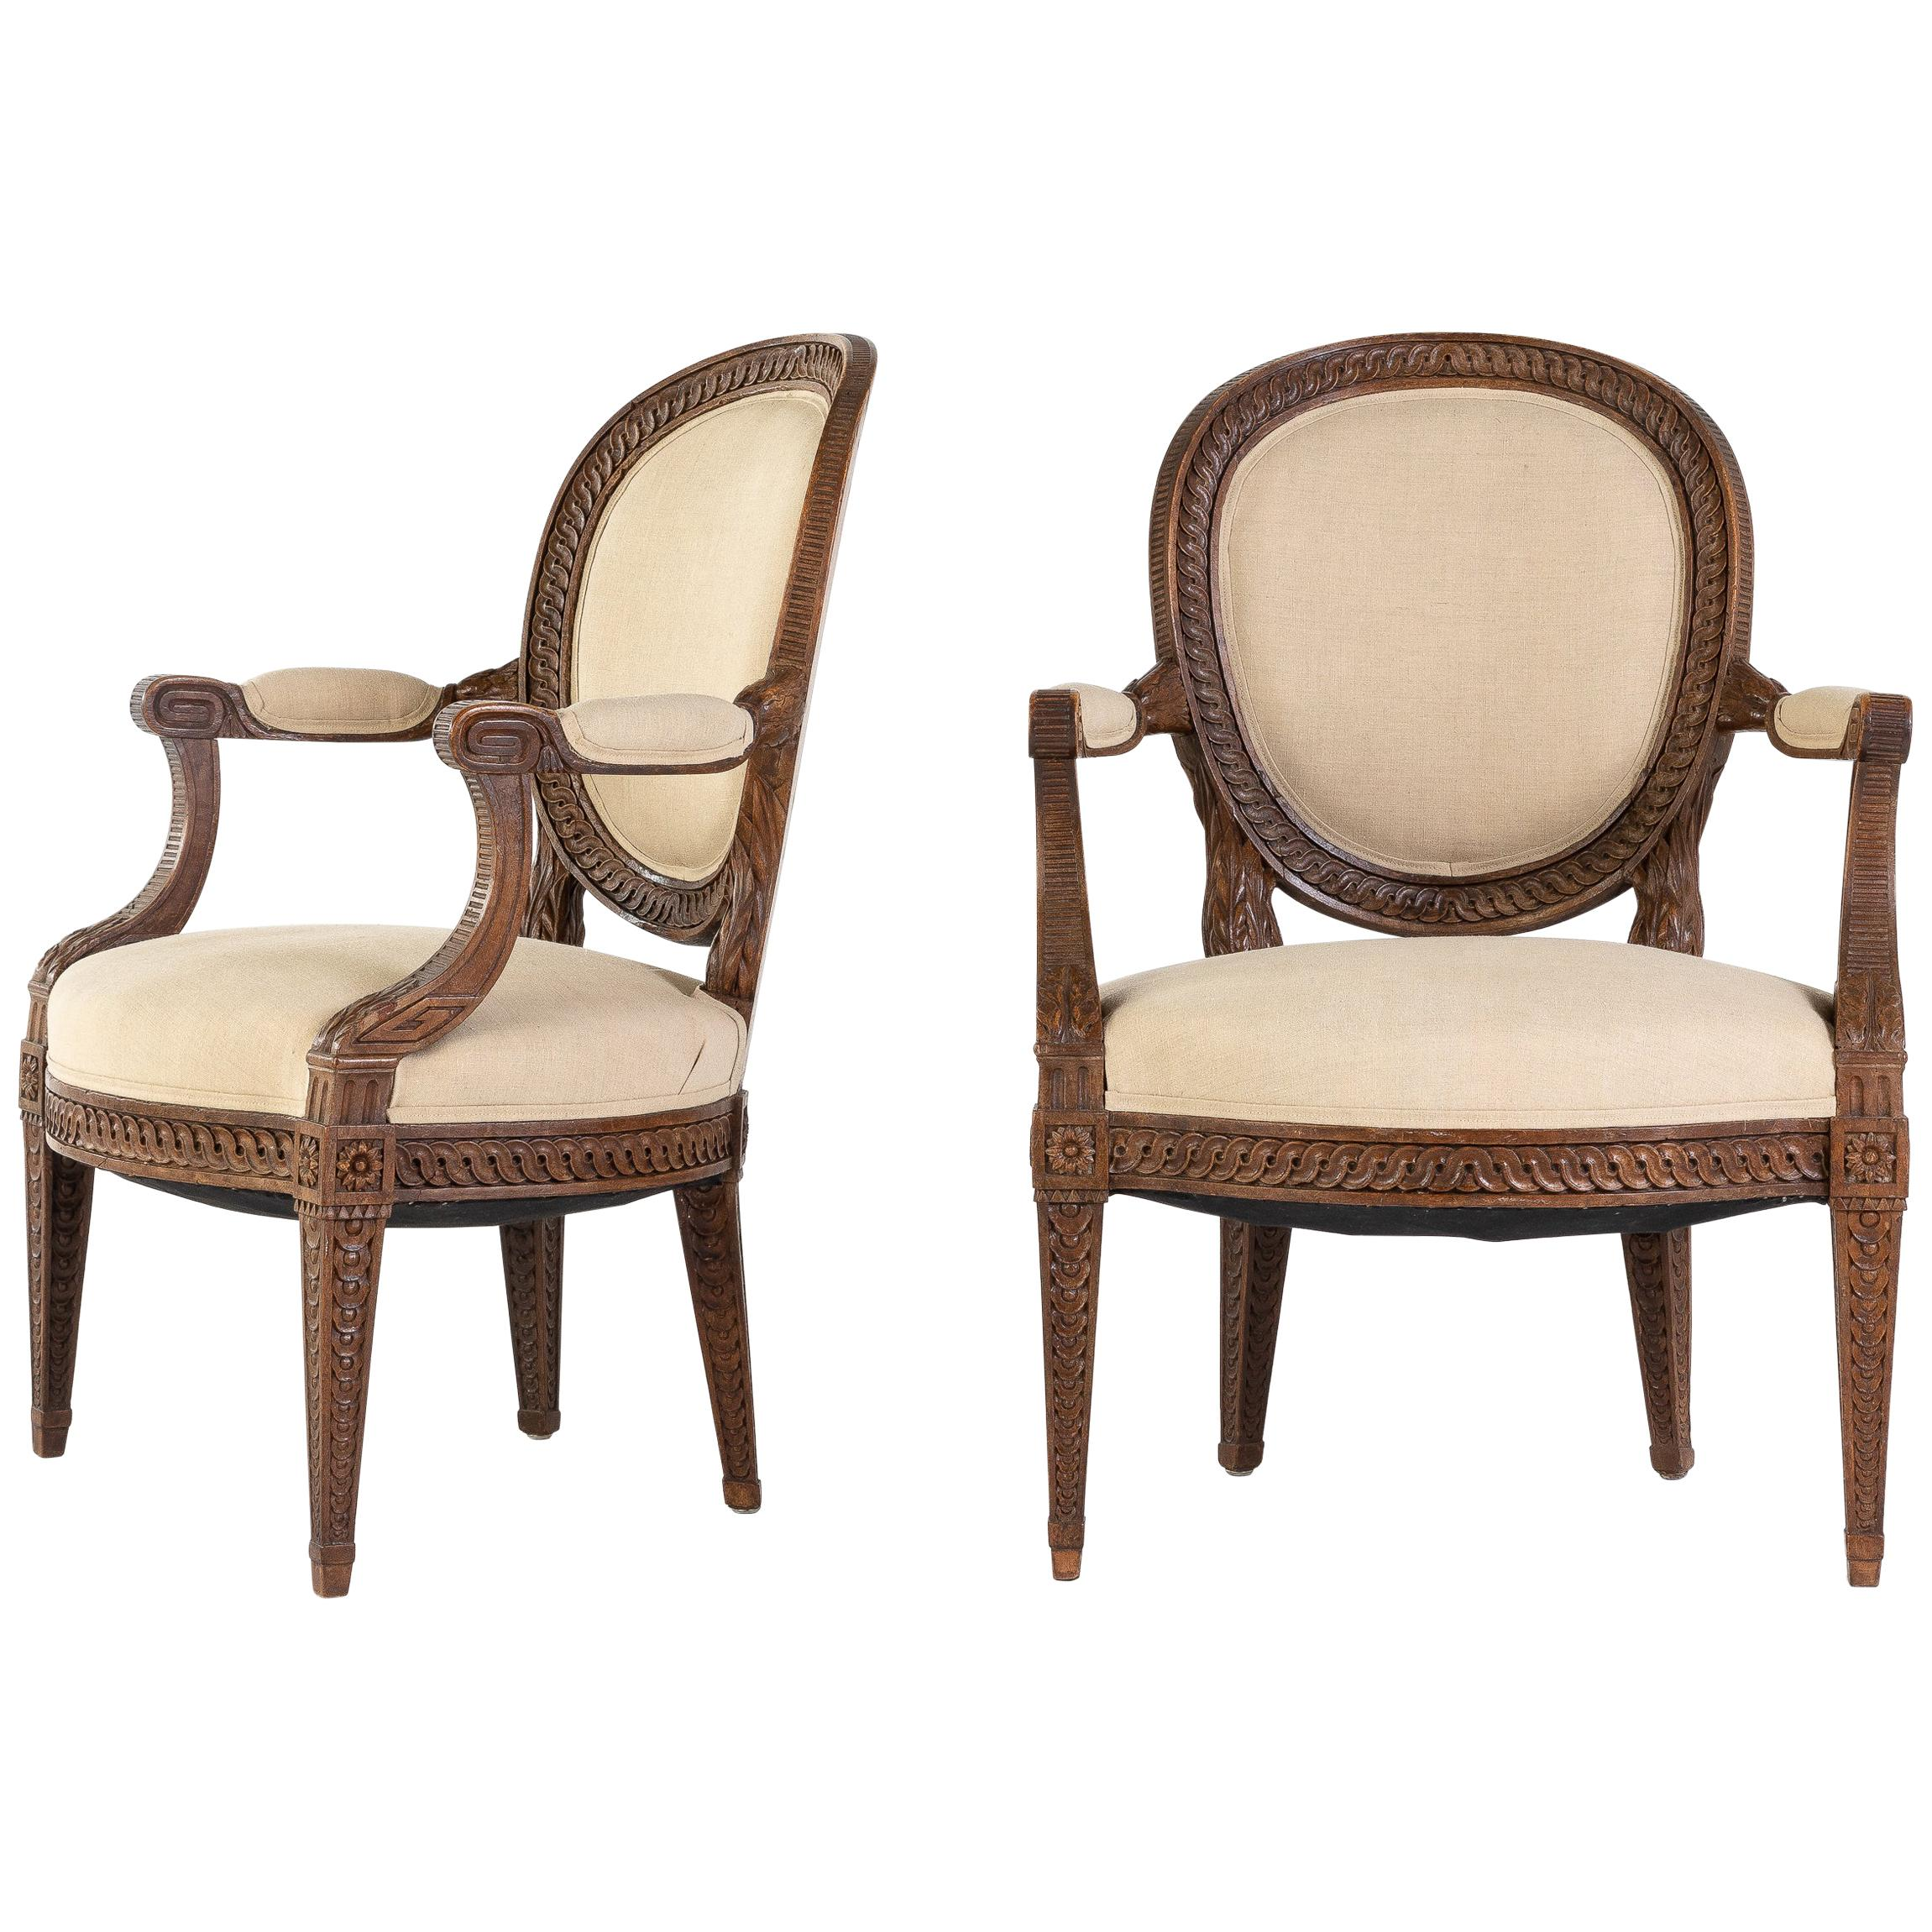 Pair of French 18th Century Armchairs